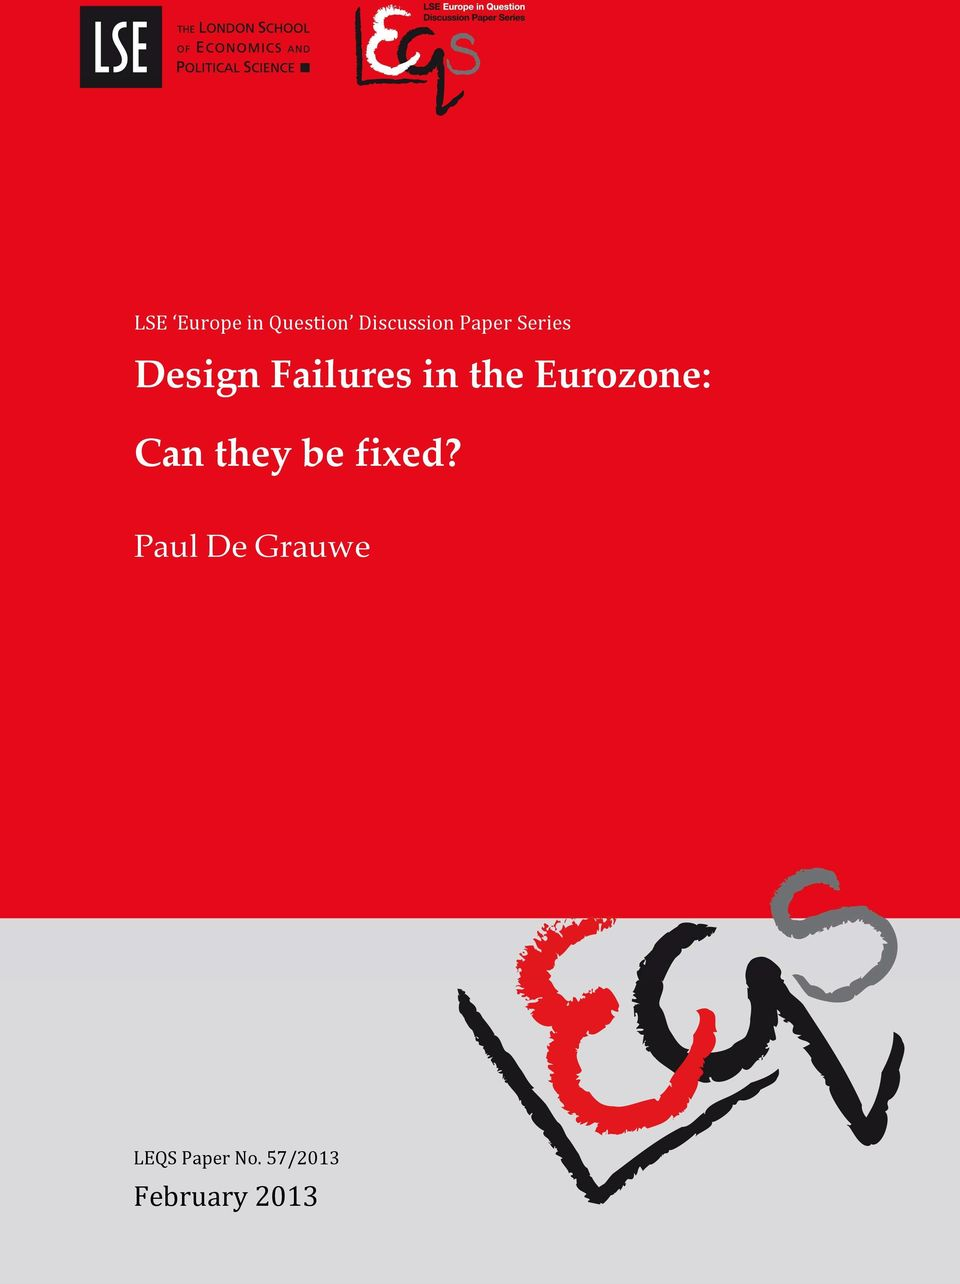 Design Failures in the Eurozone: Can they be